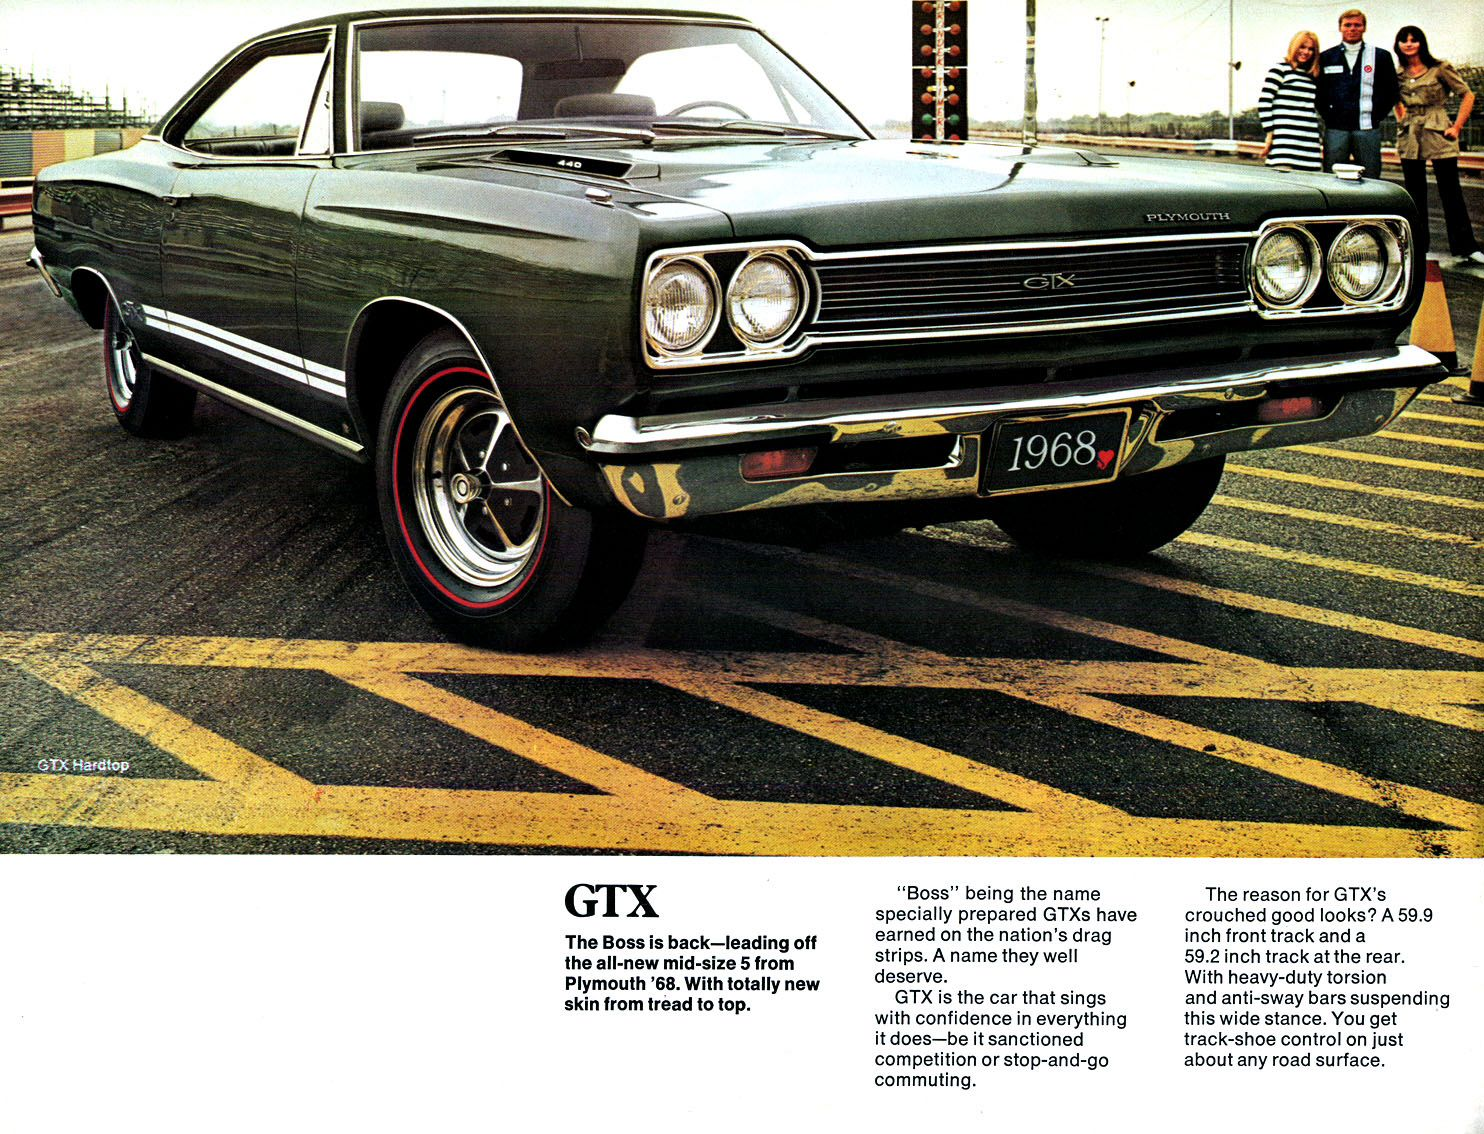 Awesome 1968 Plymouth Gtx Brochure Vintage Car Ads Pinterest 68 Charger 440 Wiring Diagram